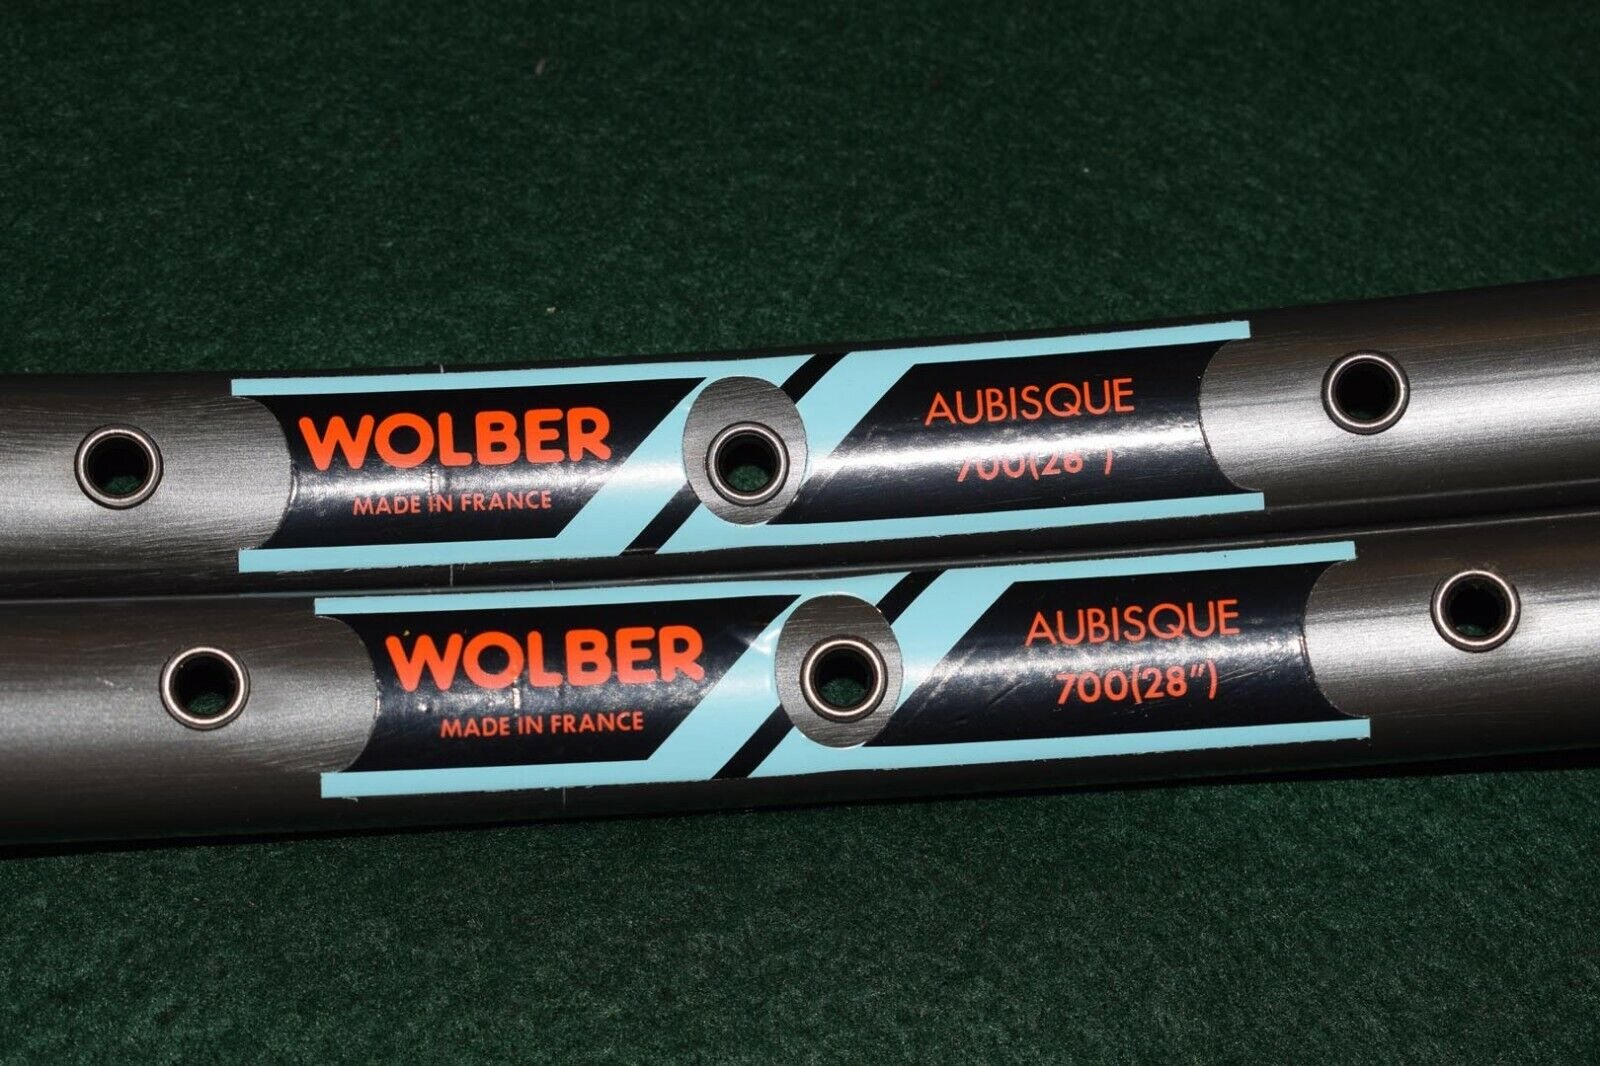 WOLBER Aubisque Tubular Rim  Set 700c 28'' 36 hole dark brown Made in France NOS  large selection